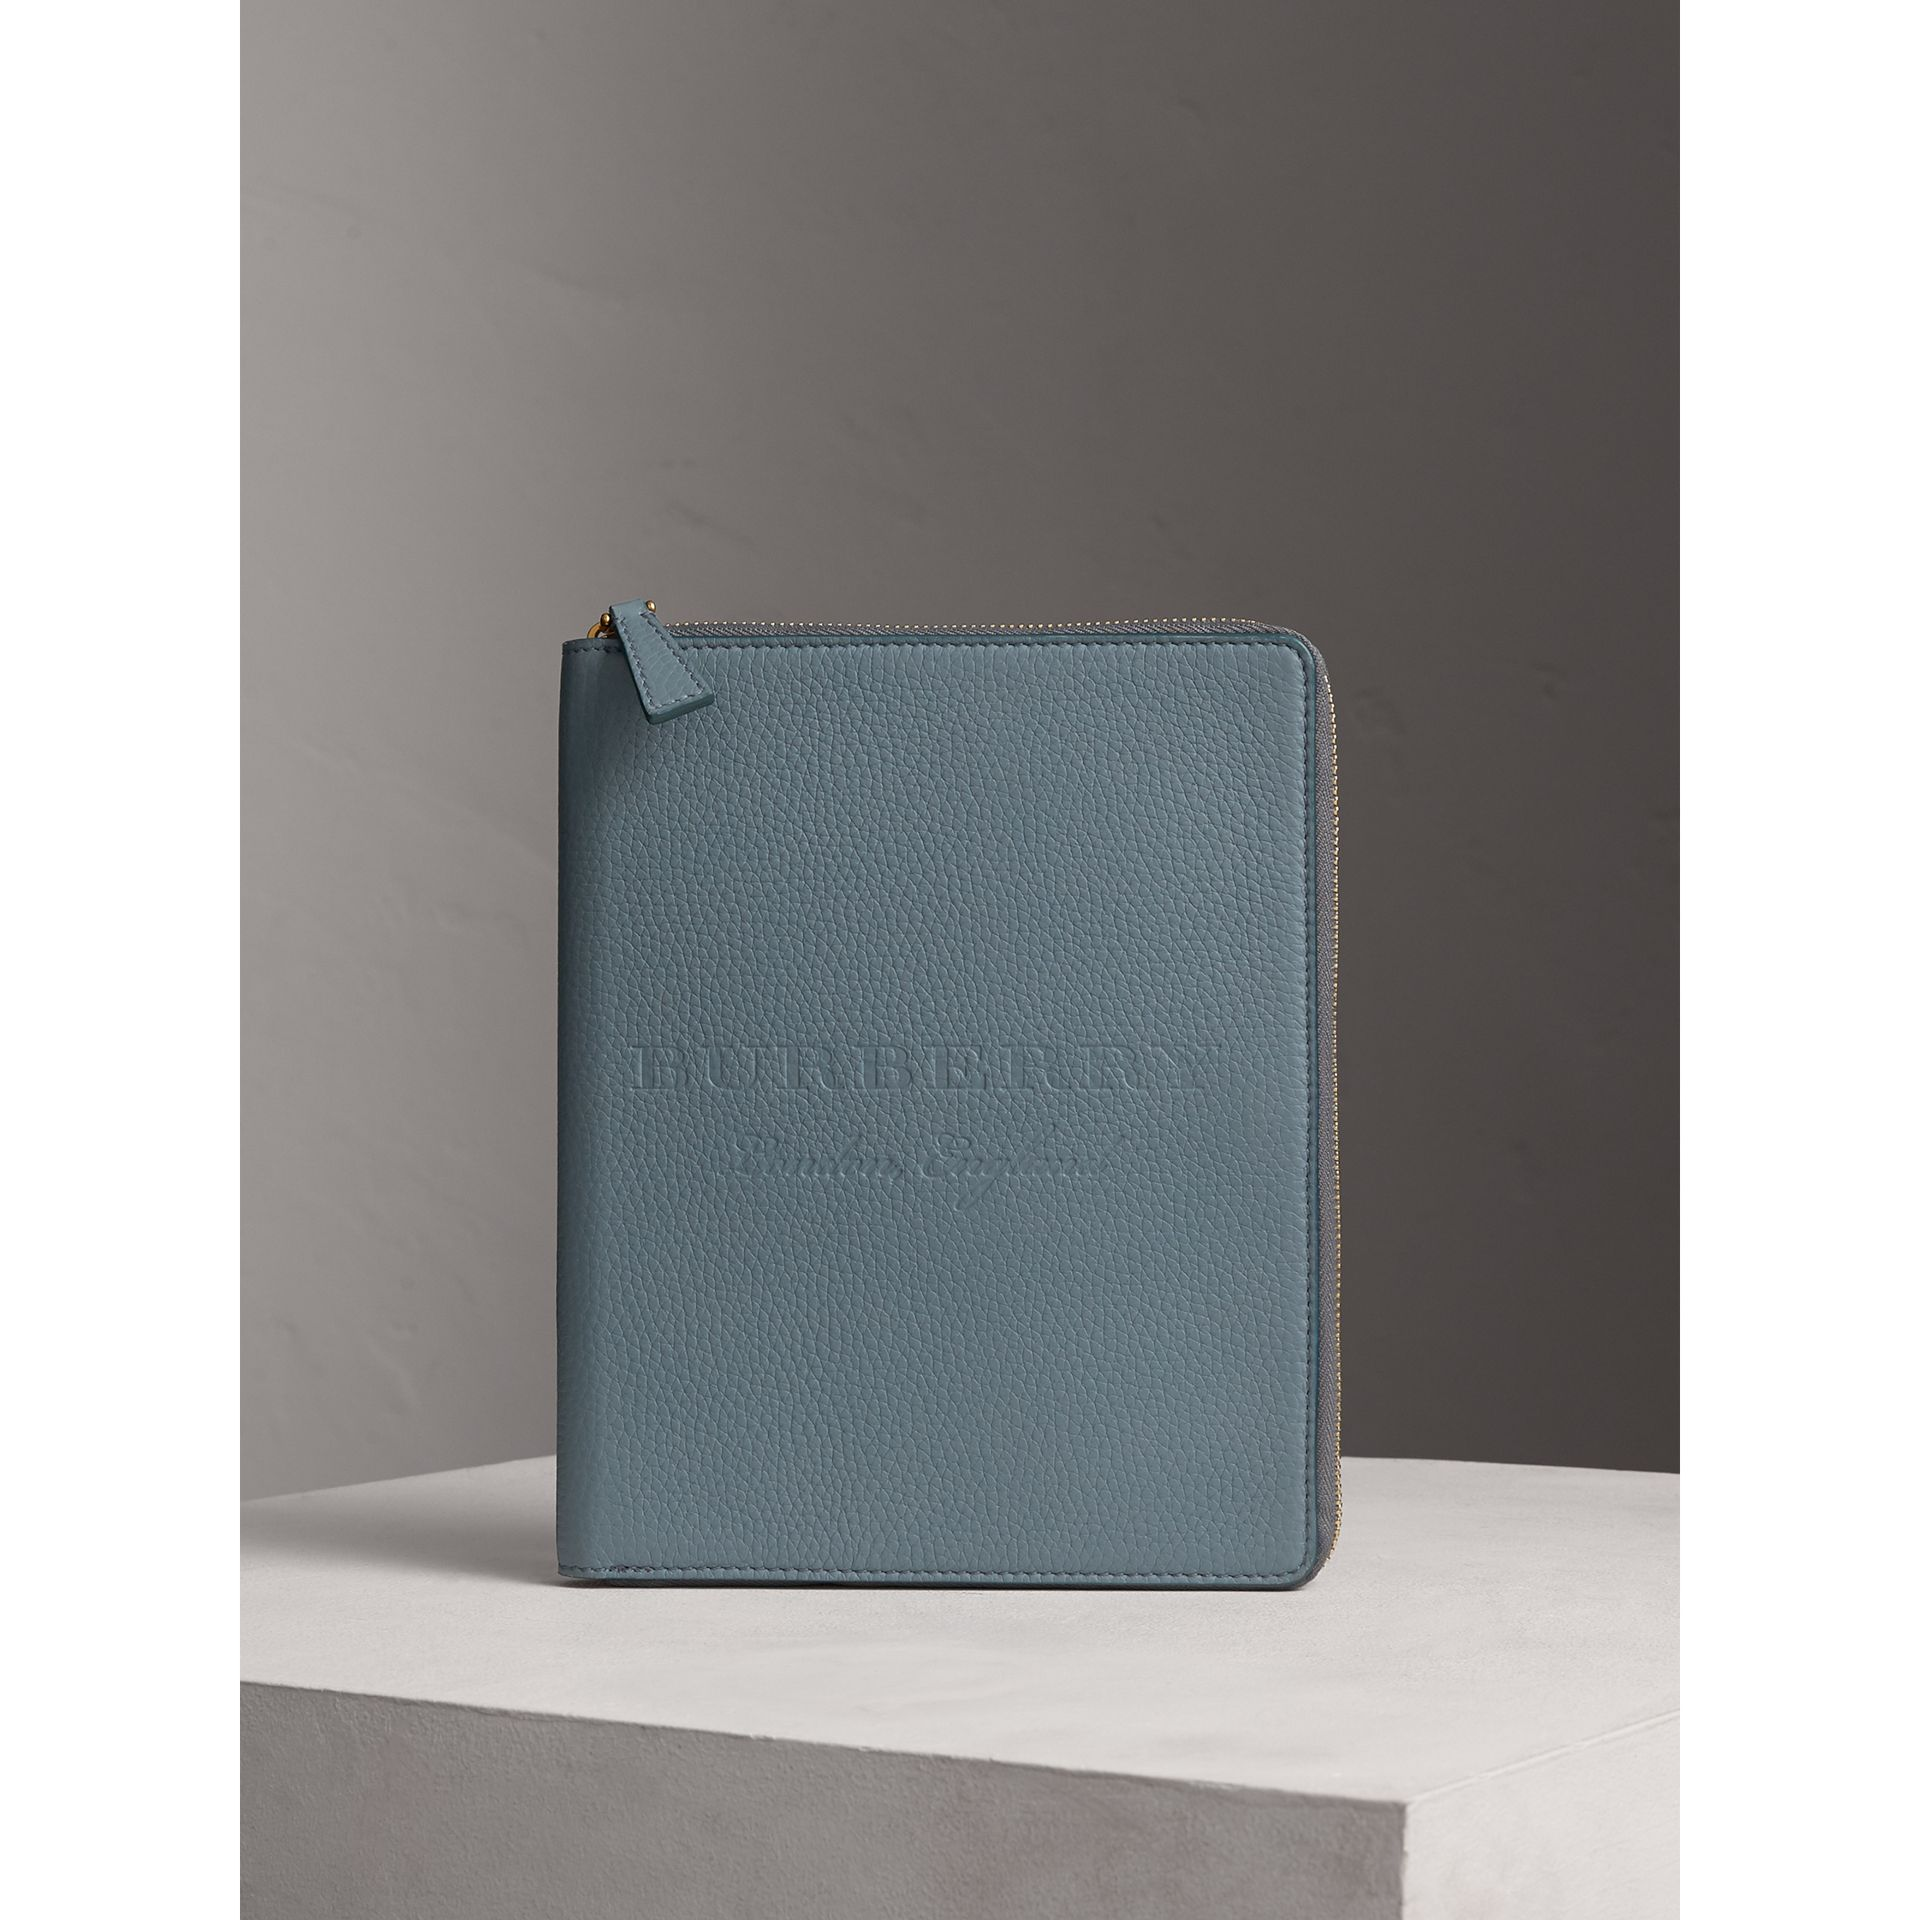 Embossed Leather Ziparound A5 Notebook Case in Dusty Teal Blue | Burberry - gallery image 4